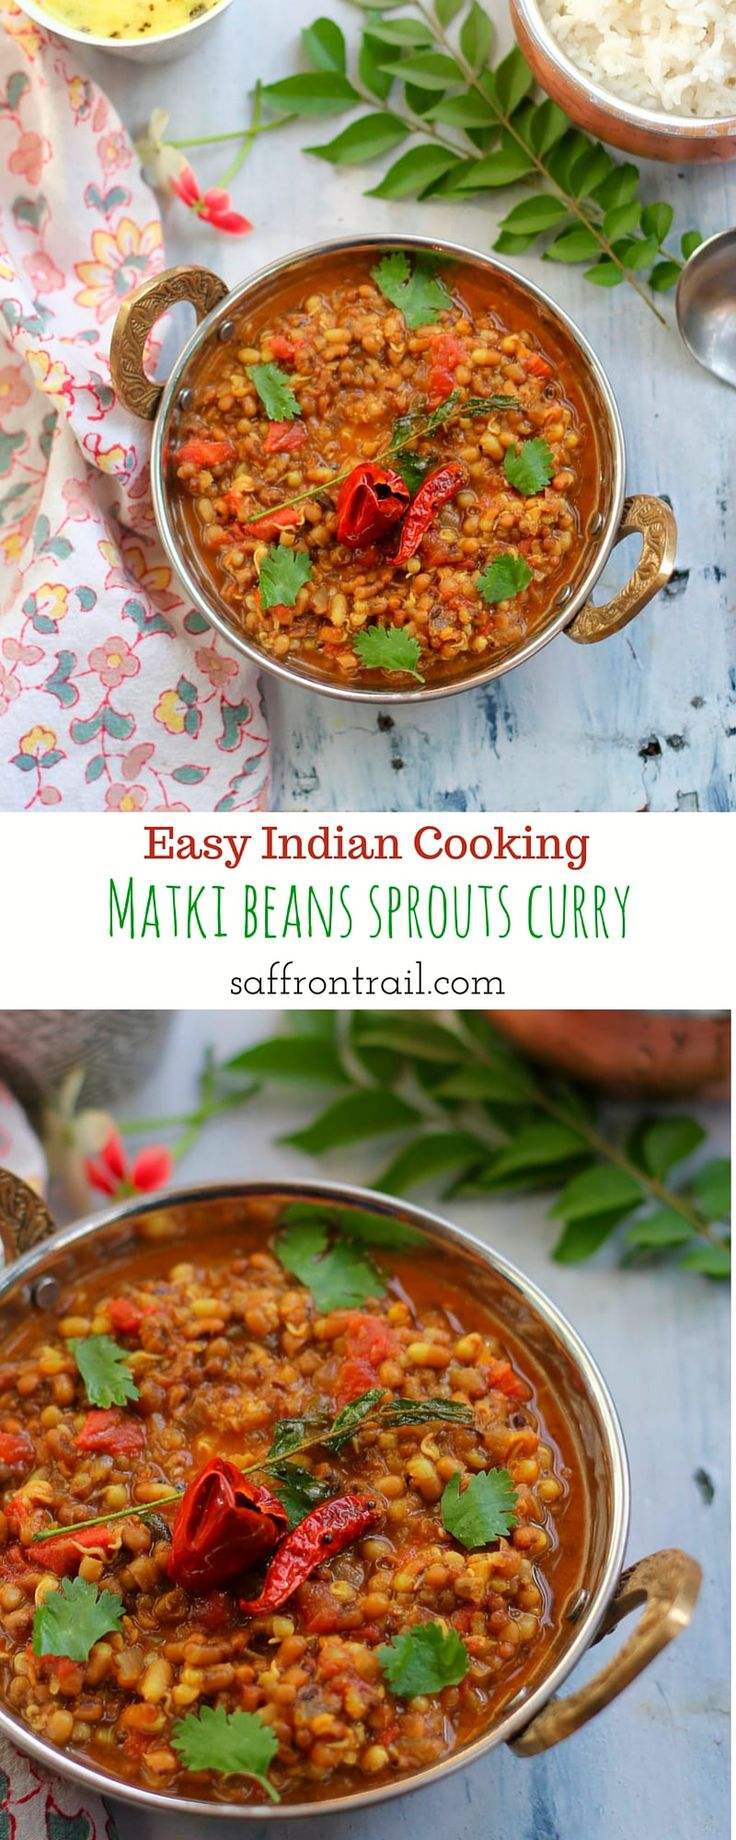 Easy Indian cooking - Indian Moth Beans (Matki) Sprouts Curry Commonly known as Matki in Indian languages, Moth beans in English, these tiny beans are packed with flavour & texture, a delight to cook with. Get the recipe for a simply curry made using these sprouts. Healthy, gluten free and vegan, this curry can be had with rotis, storebought naans or simple steamed rice.